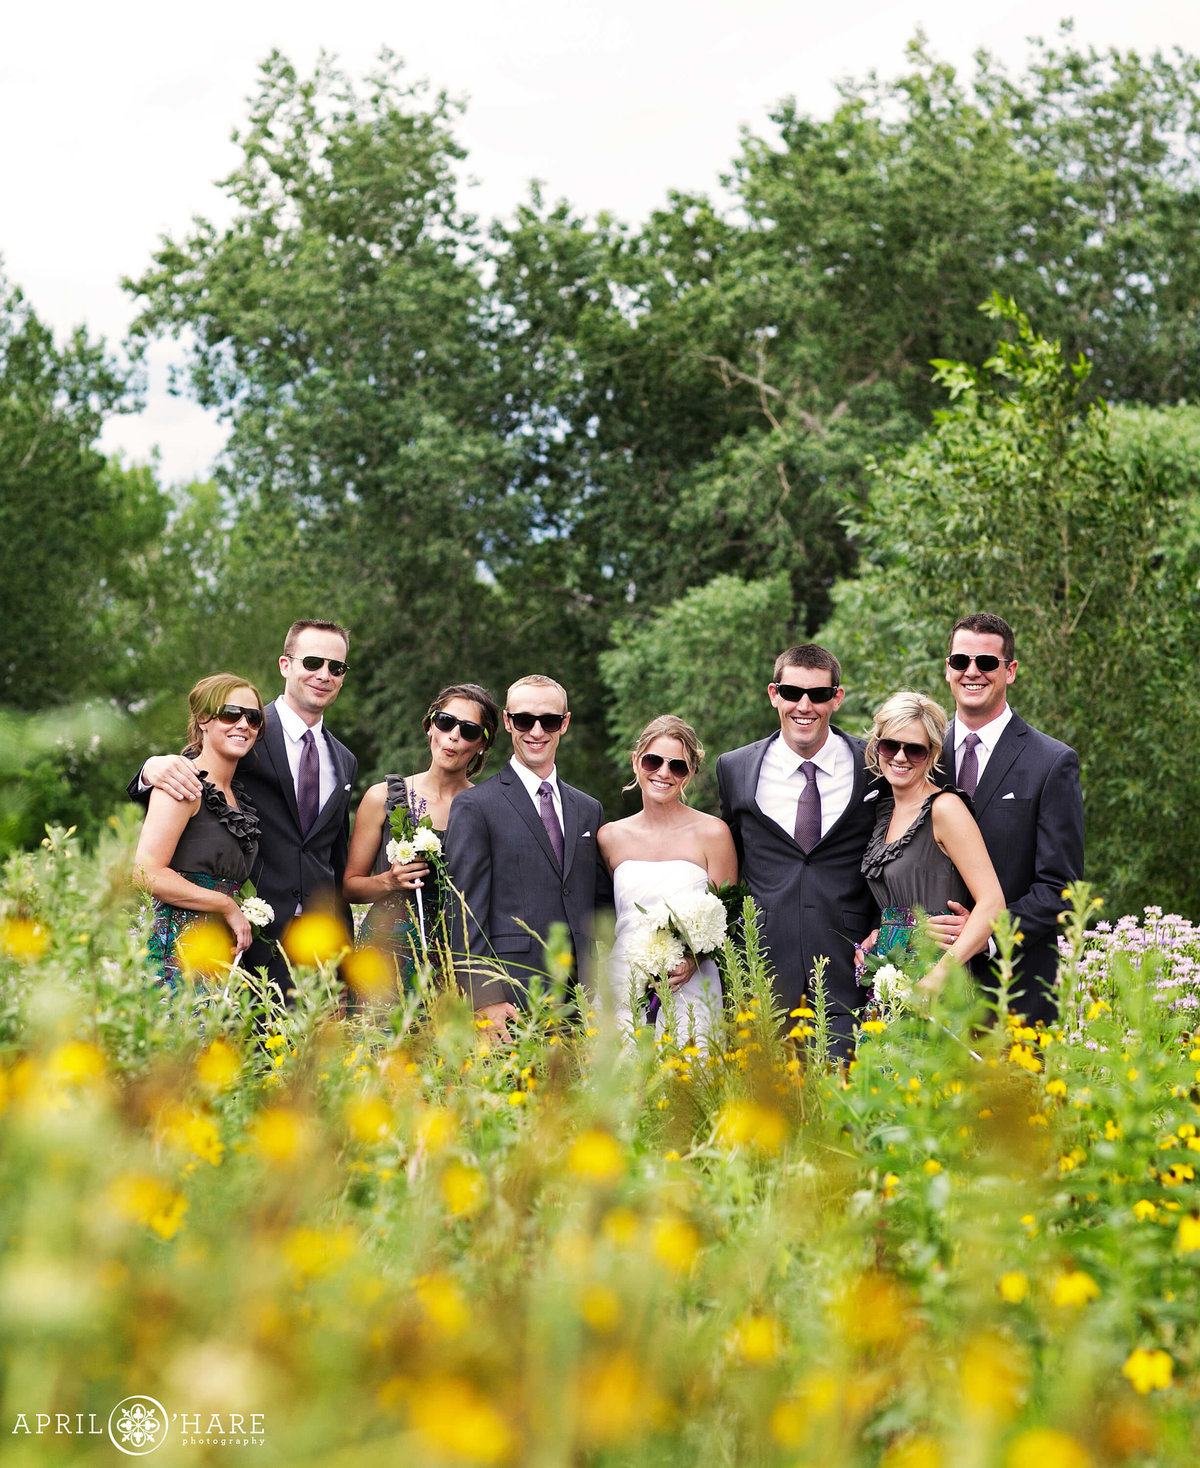 Fun Wedding Party Photography in Denver Colorado Chatfield Farms